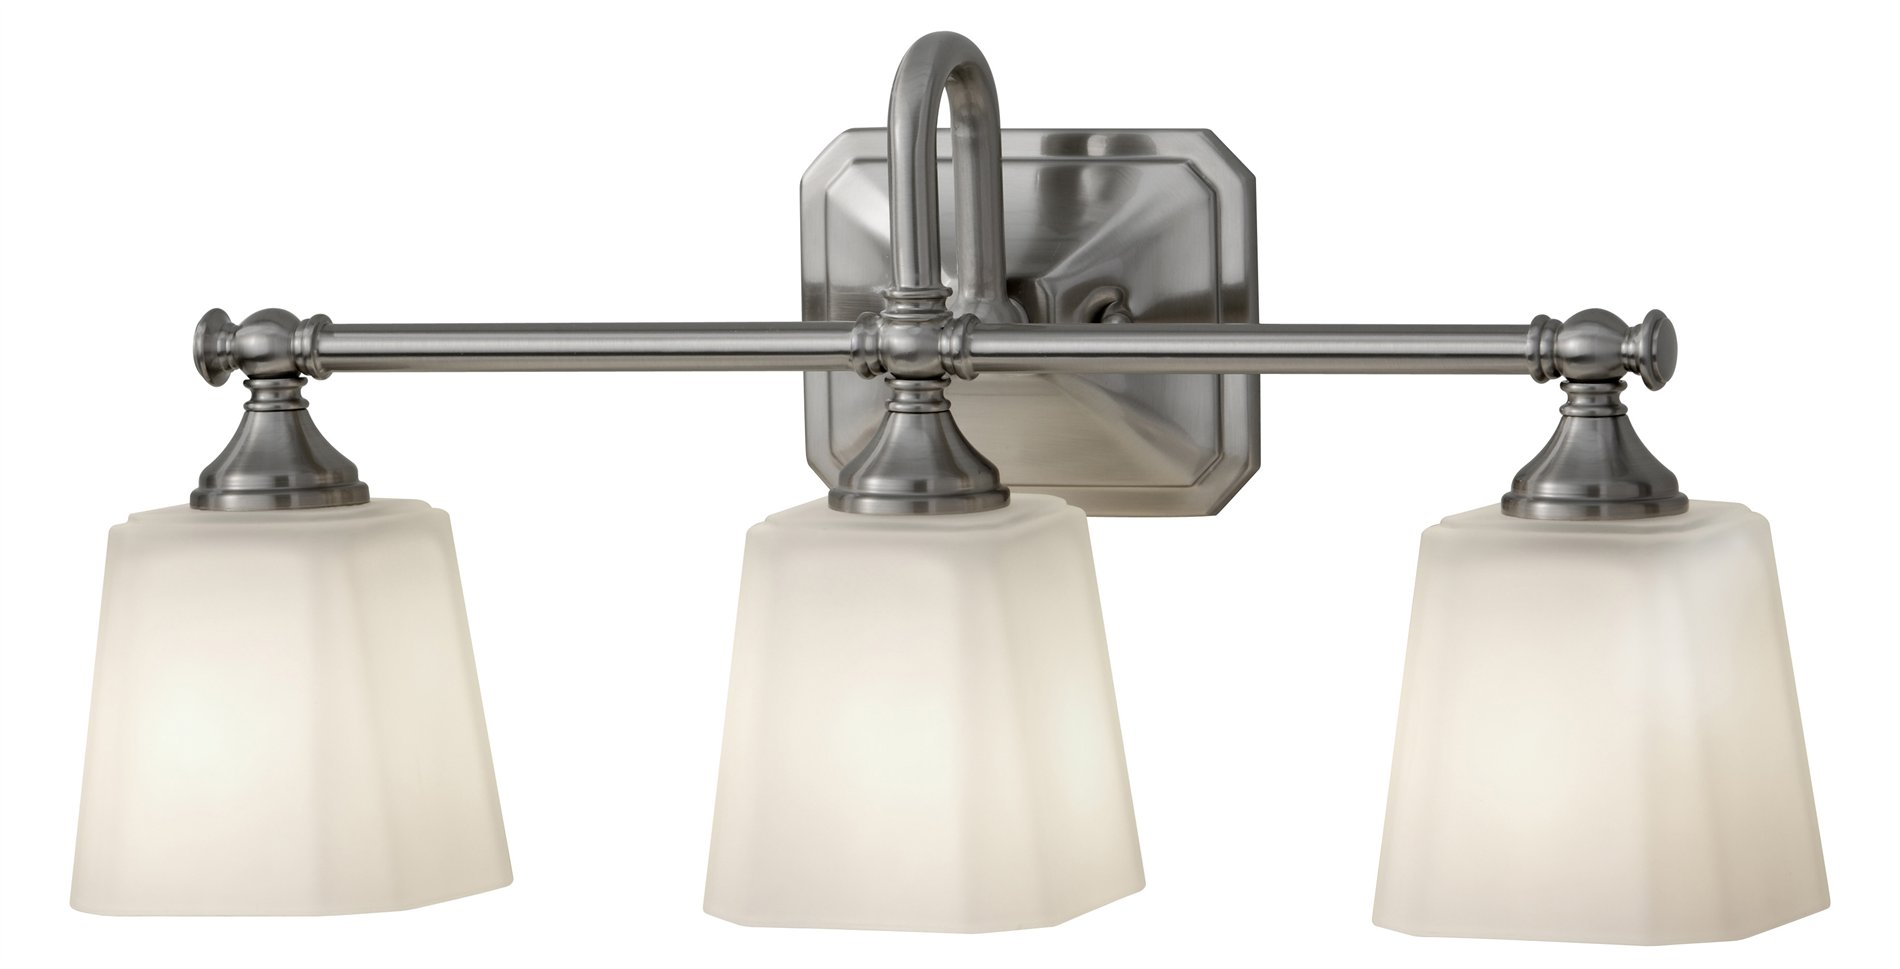 Murray feiss vs19703 bs concord transitional bathroom for Murray feiss bathroom lighting fixtures